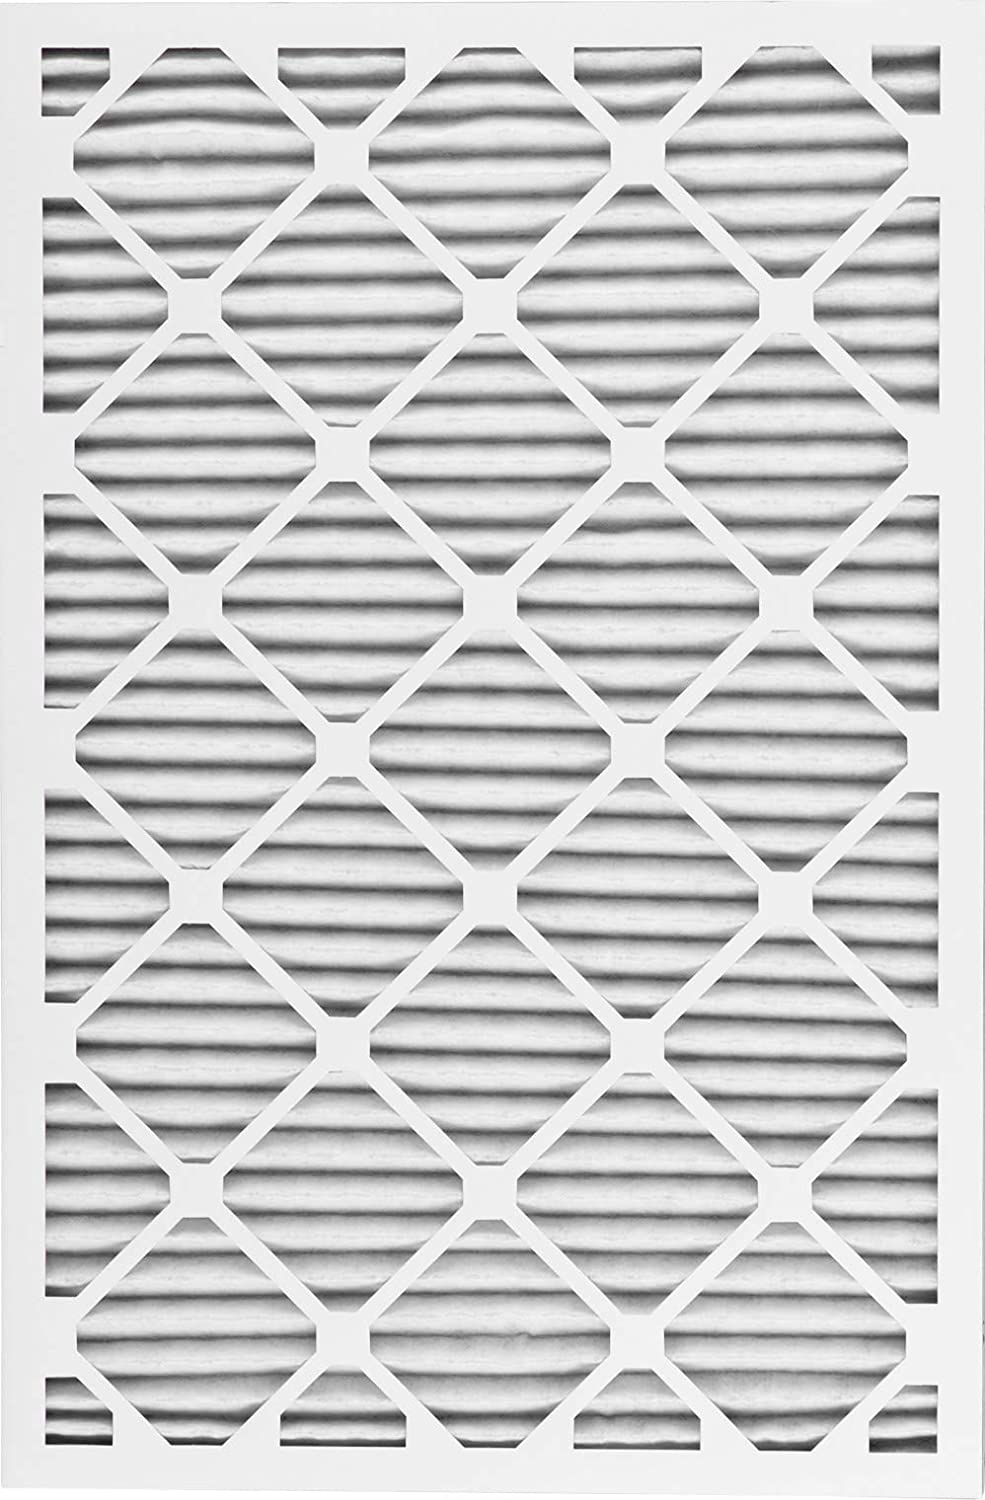 Nordic Pure 12x20x1 MERV 8 Pleated AC Furnace Air Filters 4 Pack